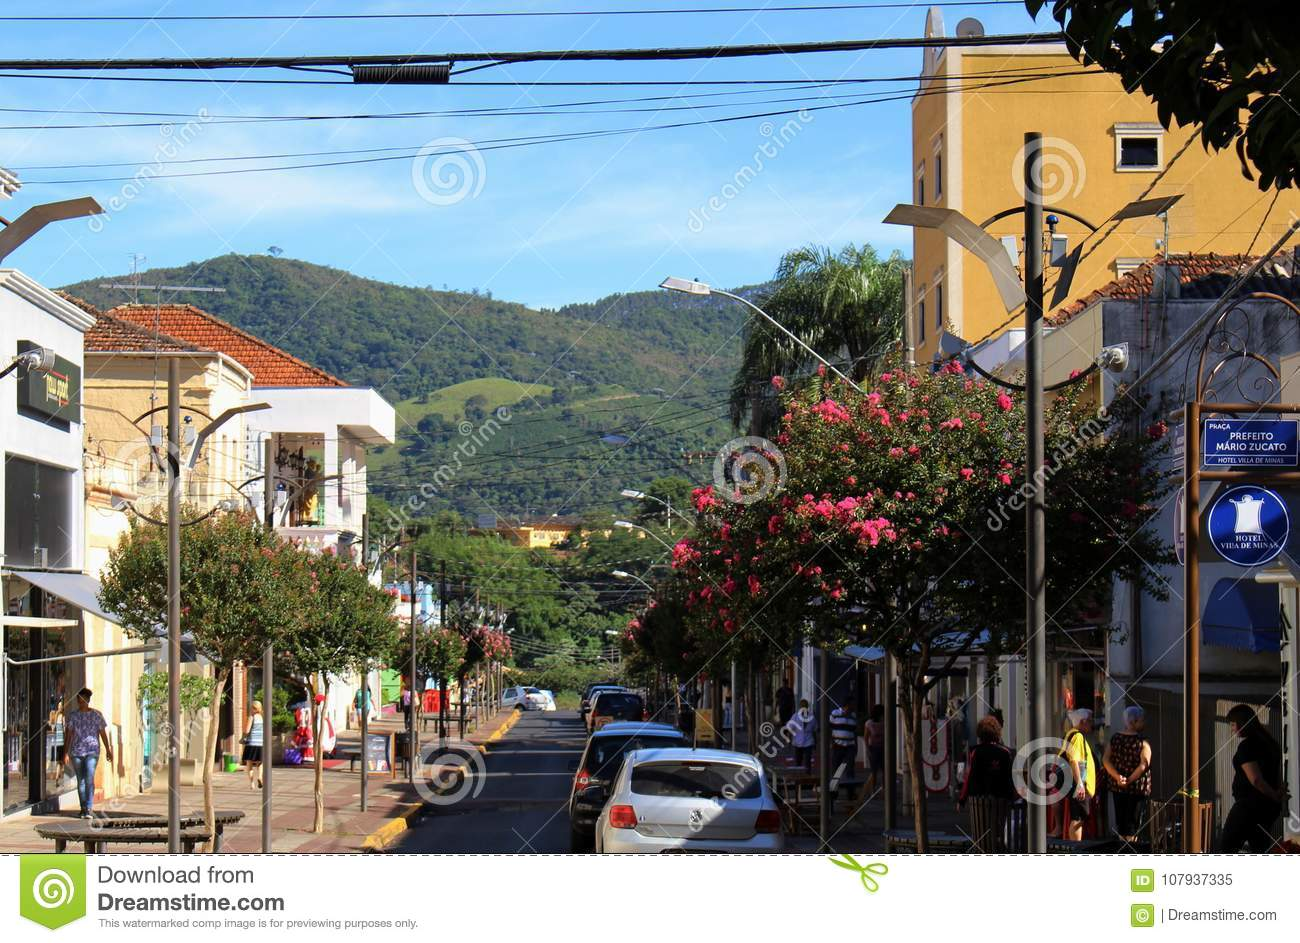 Square at little city in Brazil, Monte Siao-MG